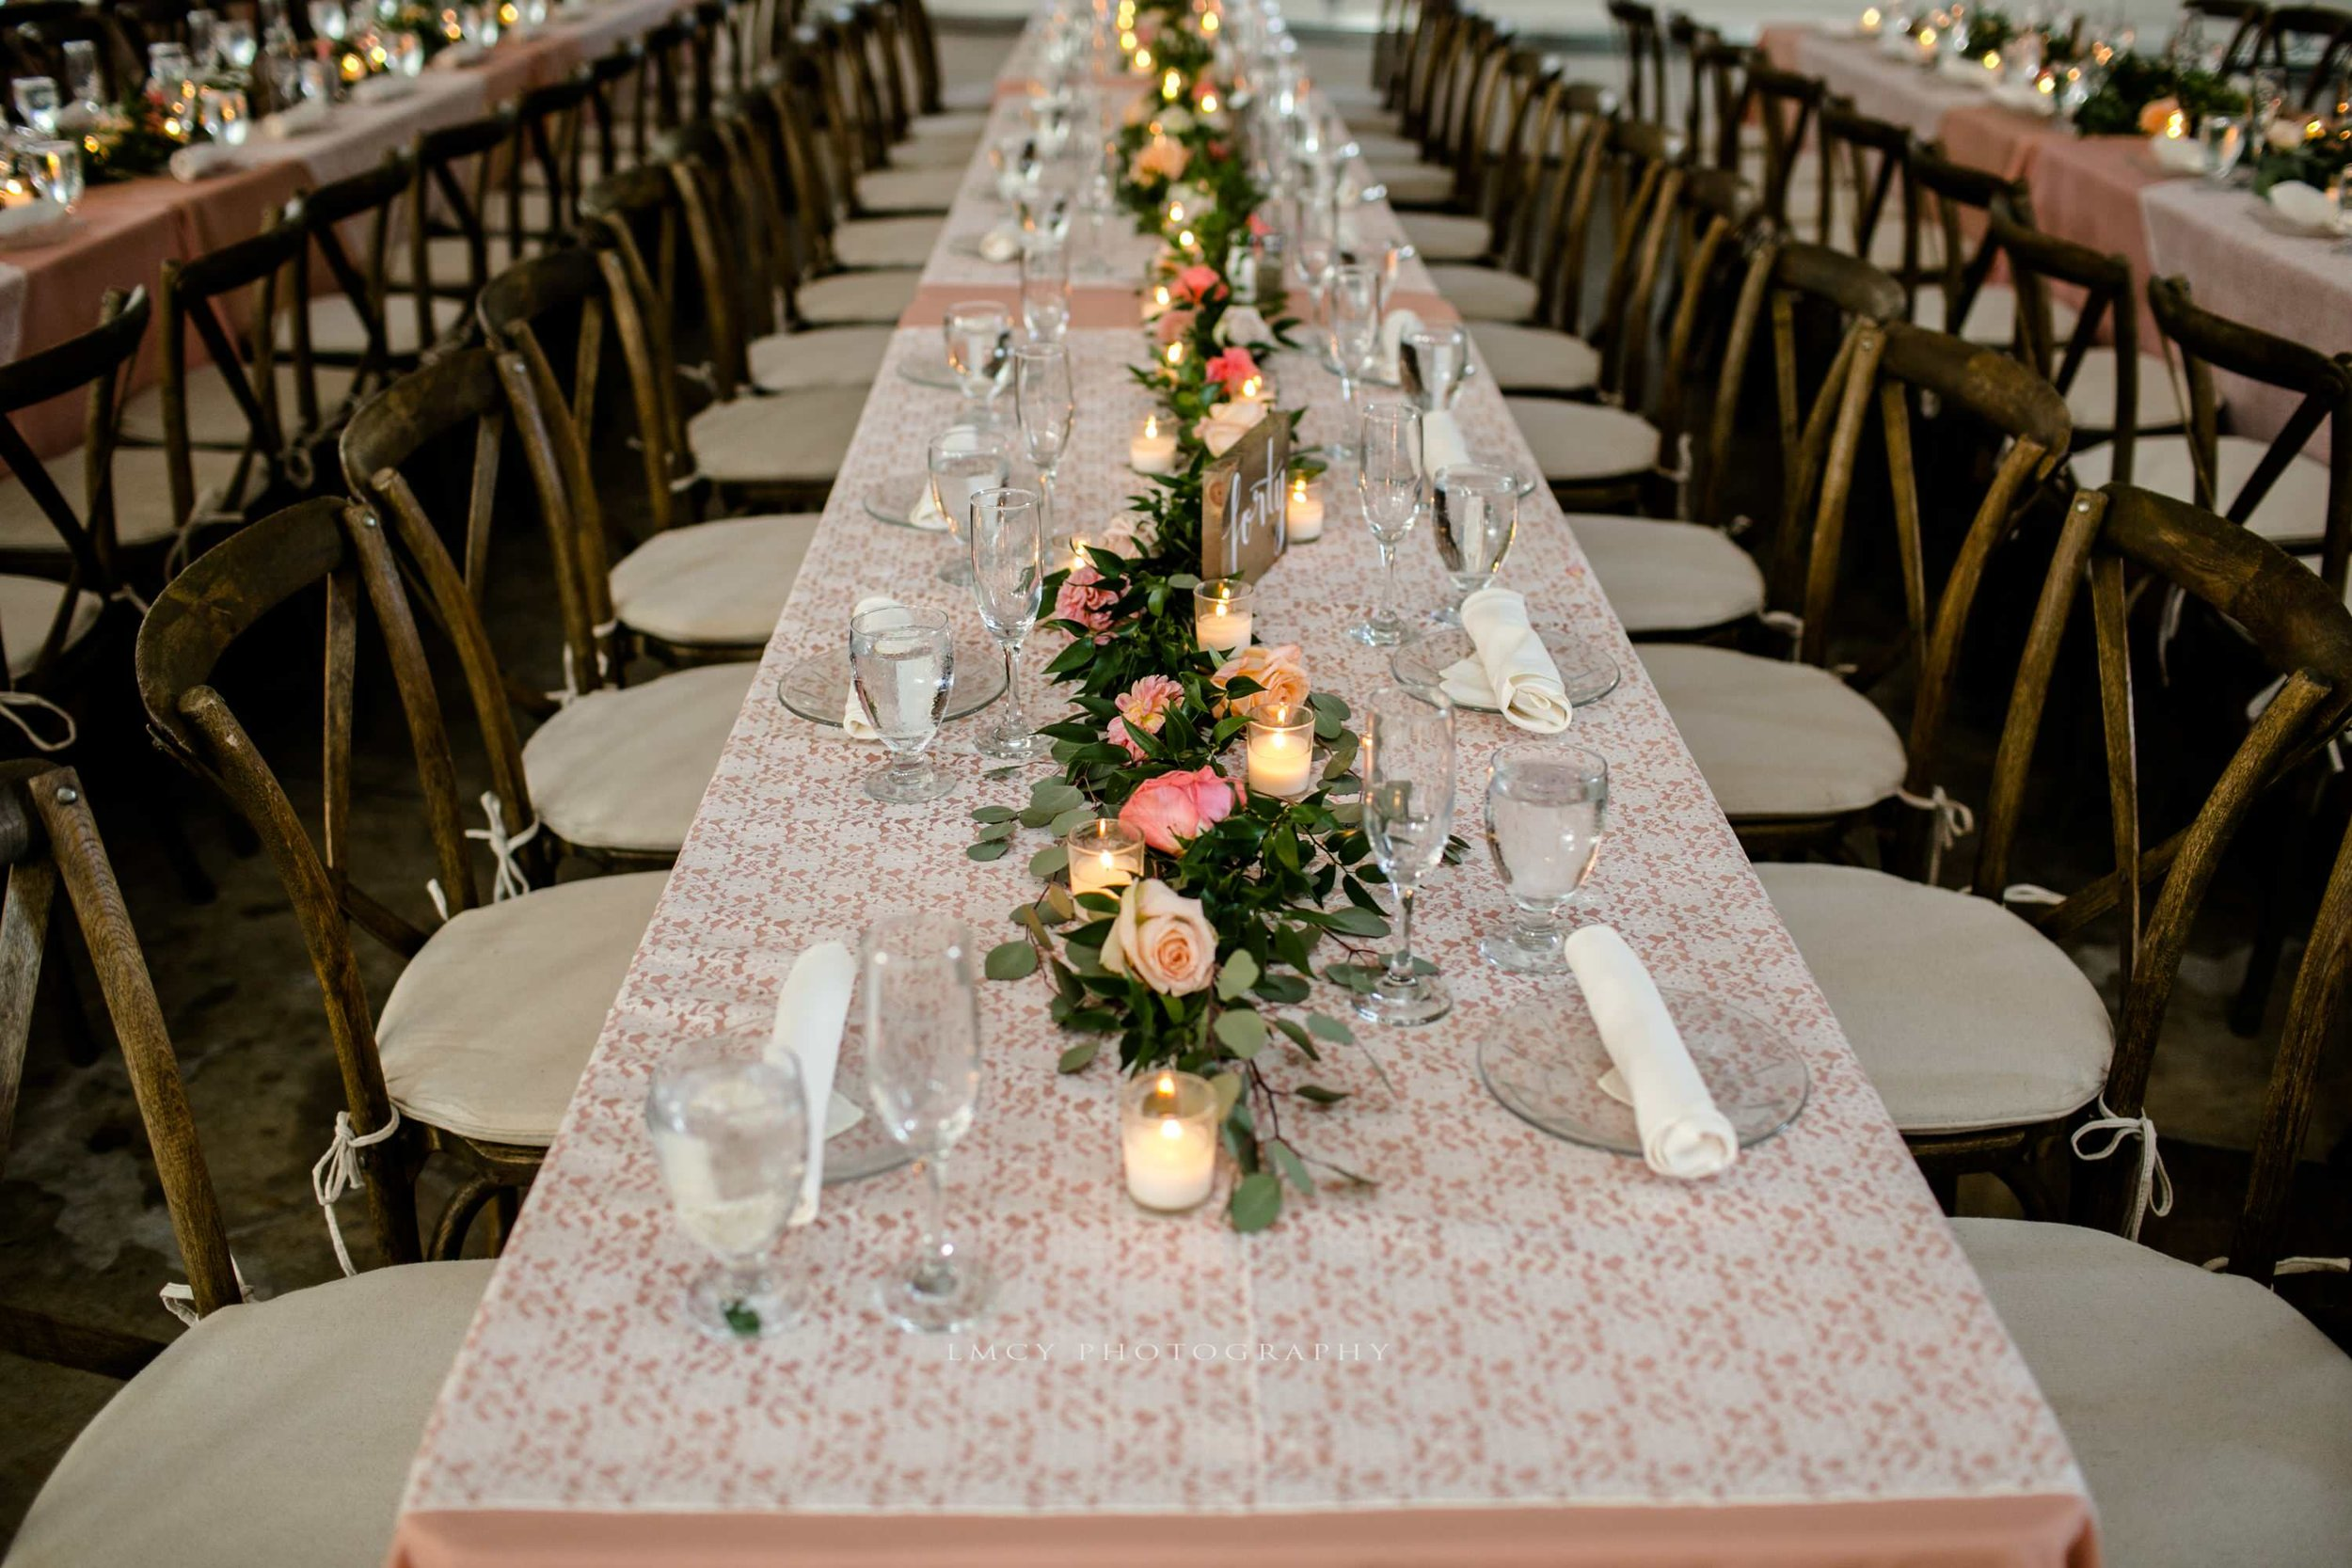 pink table linens with lace overlays and green garland centerpieces